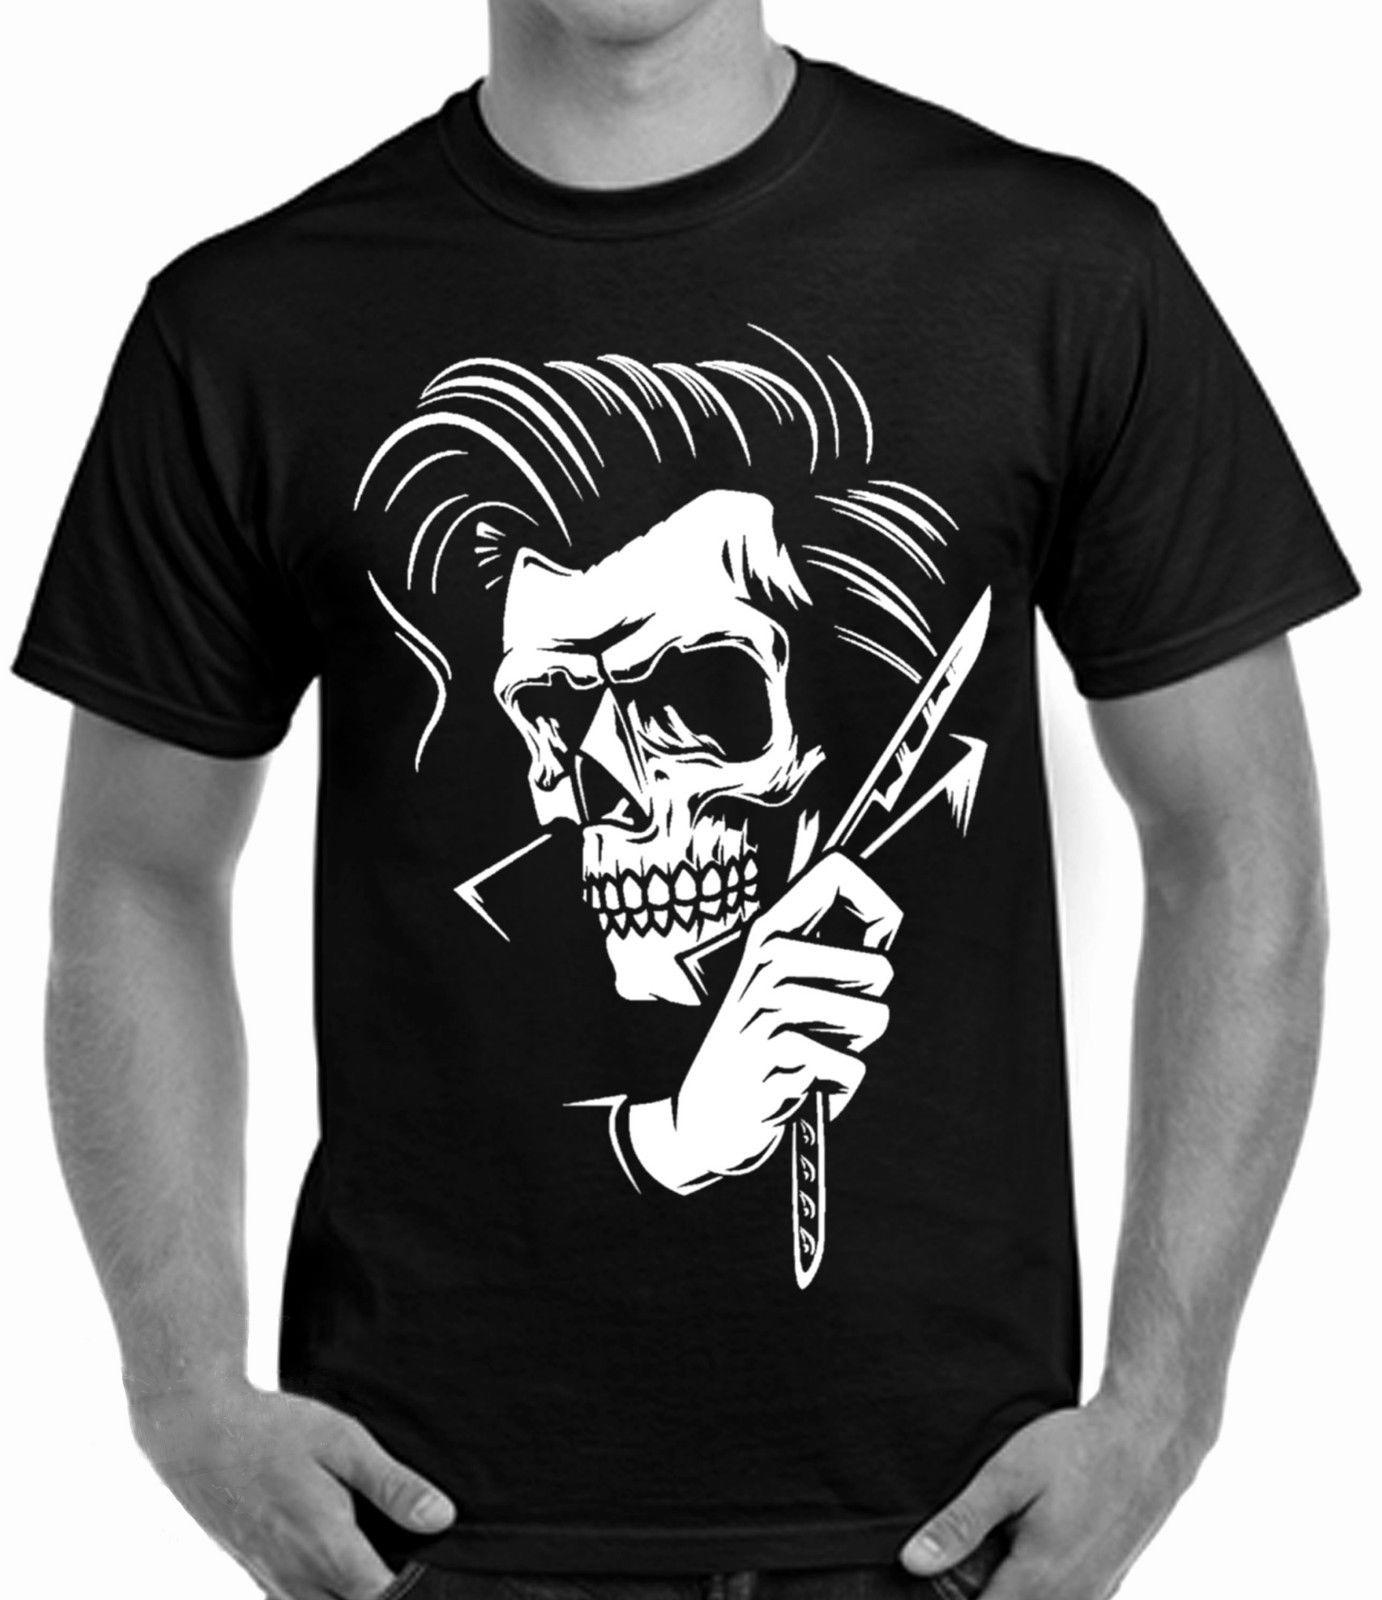 ed379d8b857 Print T Shirt 2019 Fashion Rockabilly Tattoo Hipster Barber Style T Shirt  Skull Mens  T Shirt Awesome Tee Shirt Designs T Shirts Awesome From  Eatipstore